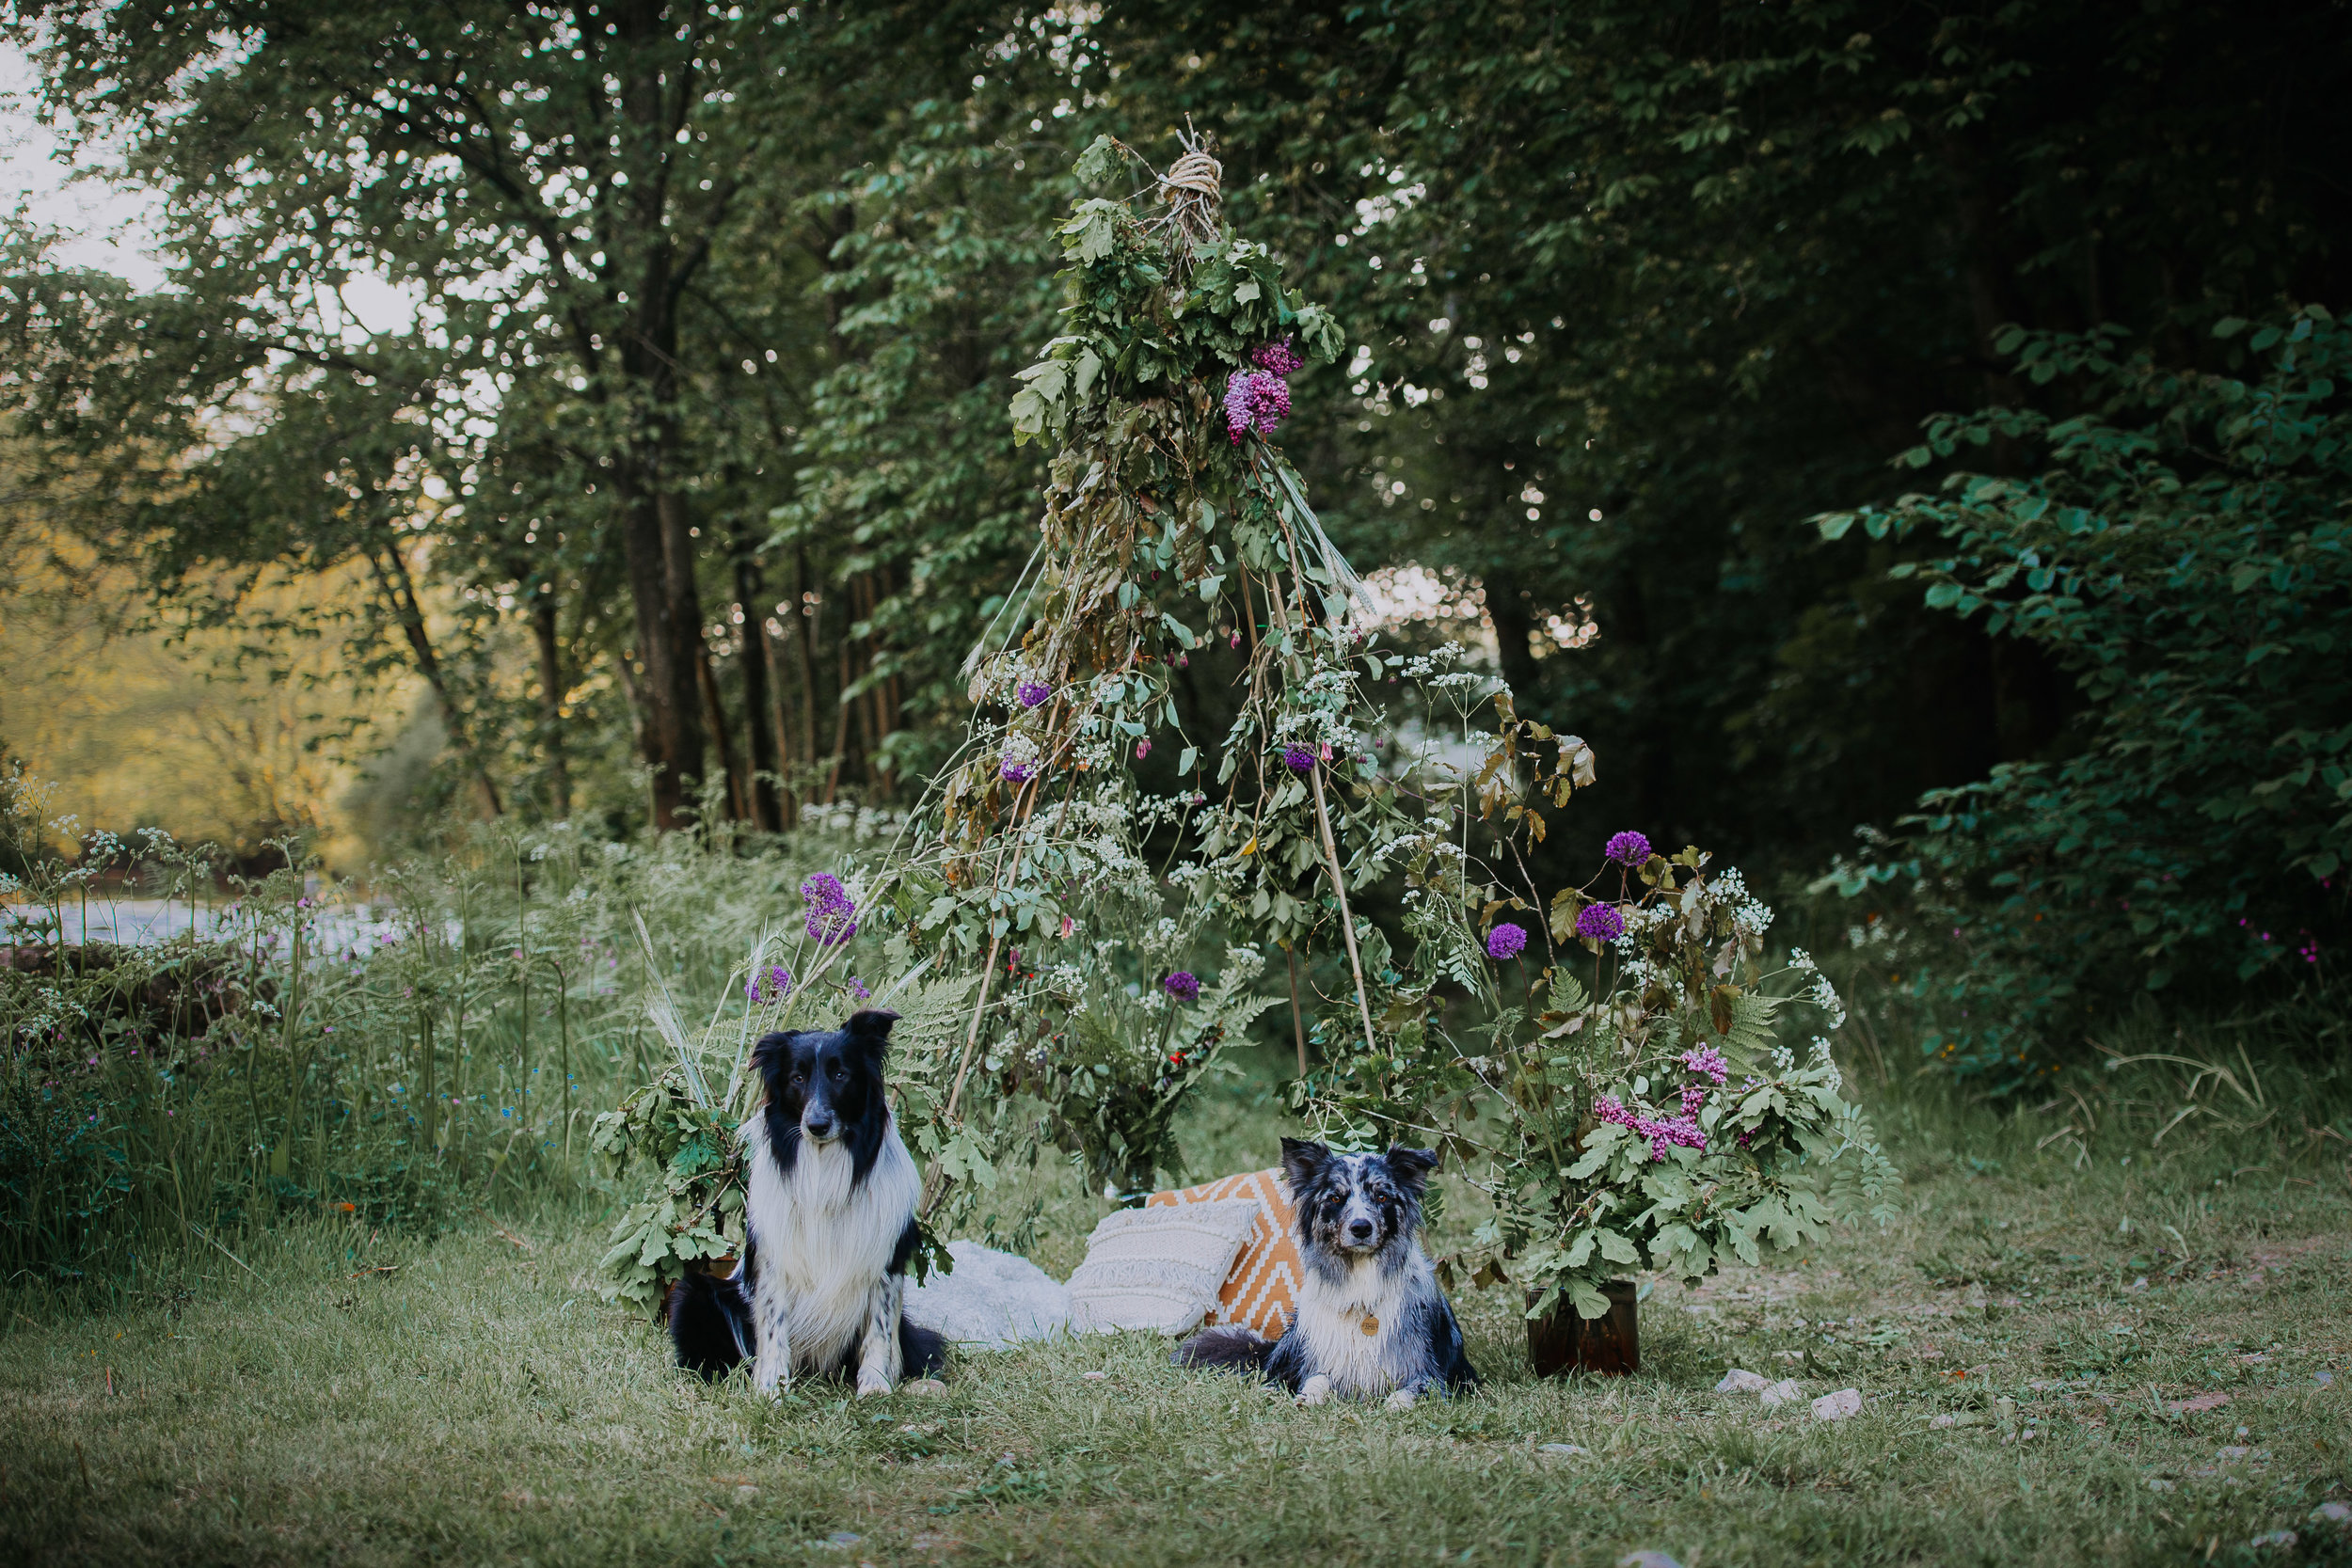 Outdoor tipi styled for a boho eco friendly wedding with cute doggies!